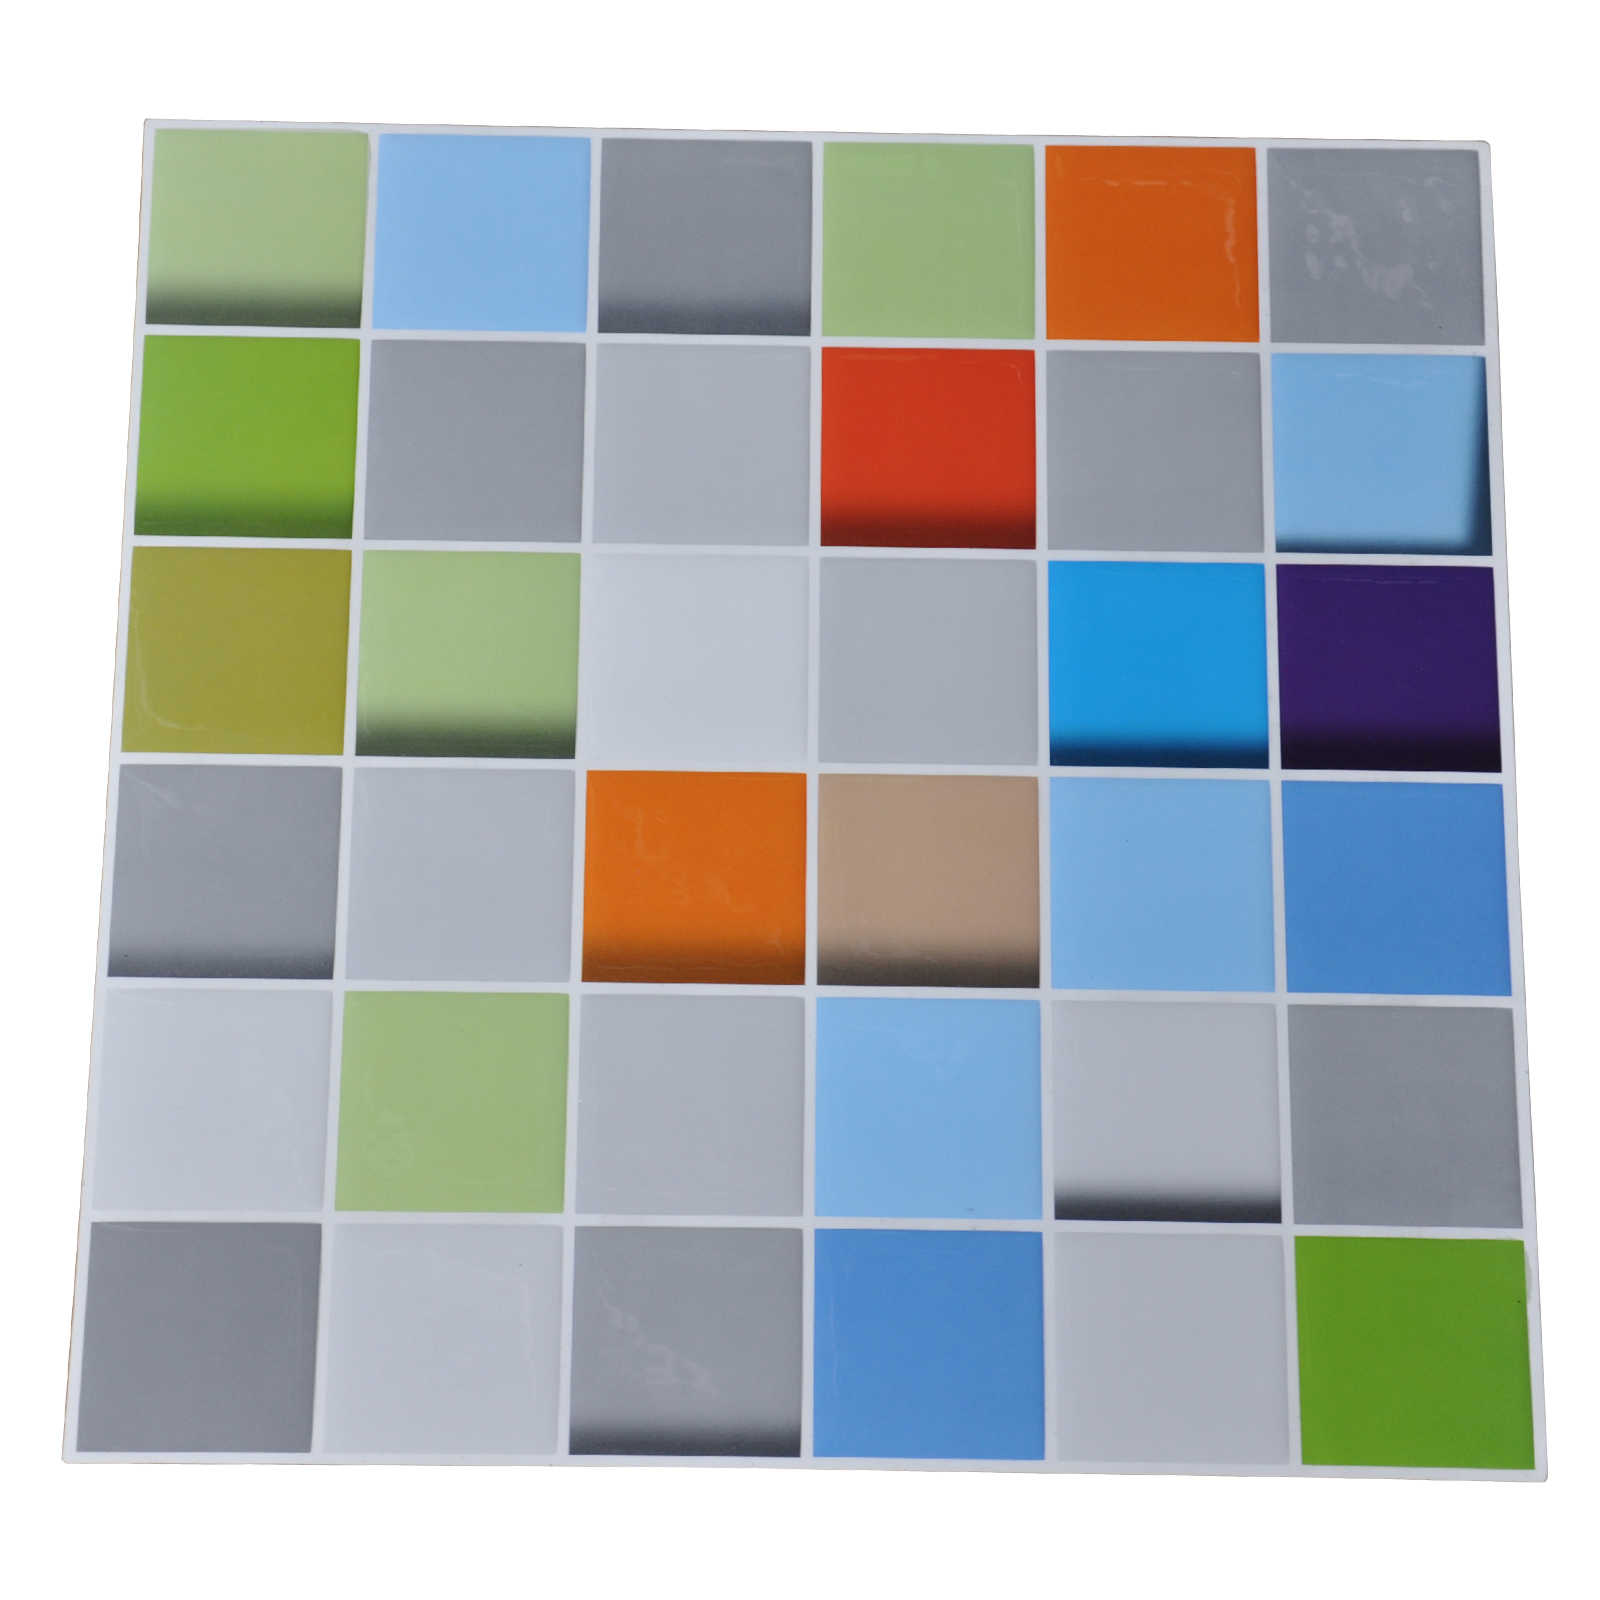 Art3d 12' x 12' Gel Mosaic Sticker Kitchen Backsplash Tile Peel and Stick Vinyl Sticker, Colorful Square